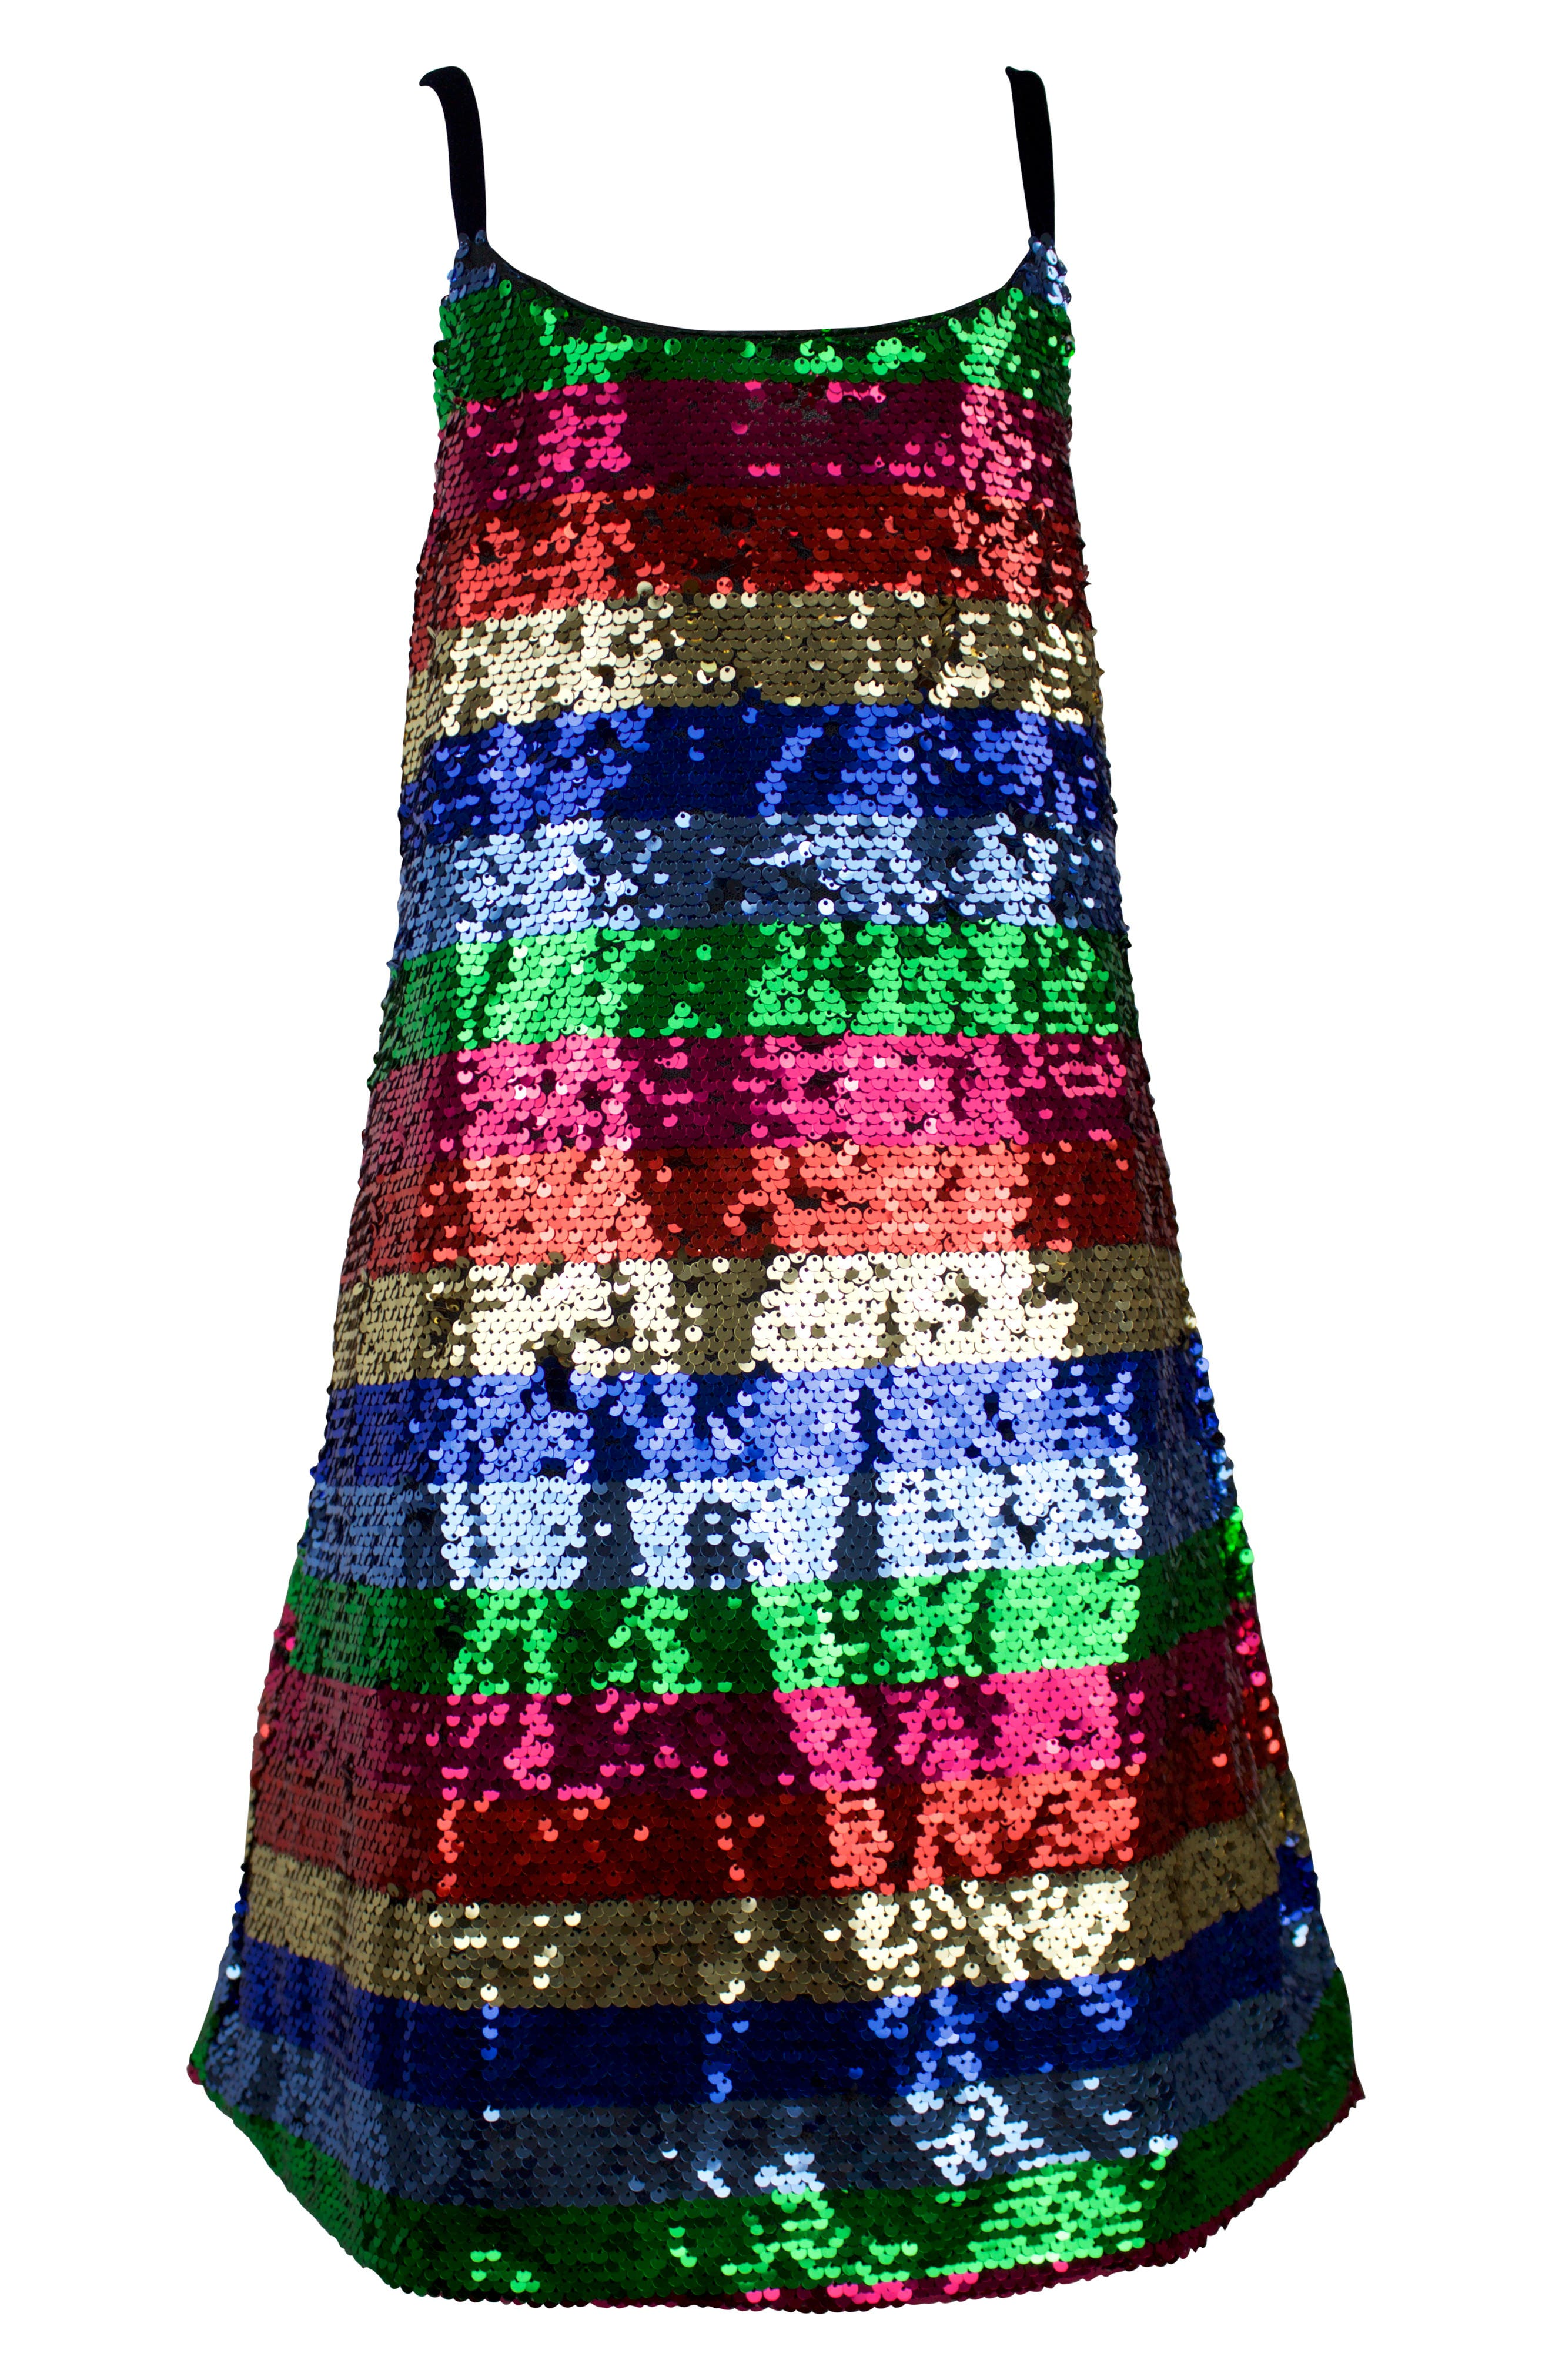 60s 70s Kids Costumes & Clothing Girls & Boys Toddler Girls Lola  The Boys Chasing Rainbows Sequin Dress Size 4T - Pink $74.00 AT vintagedancer.com